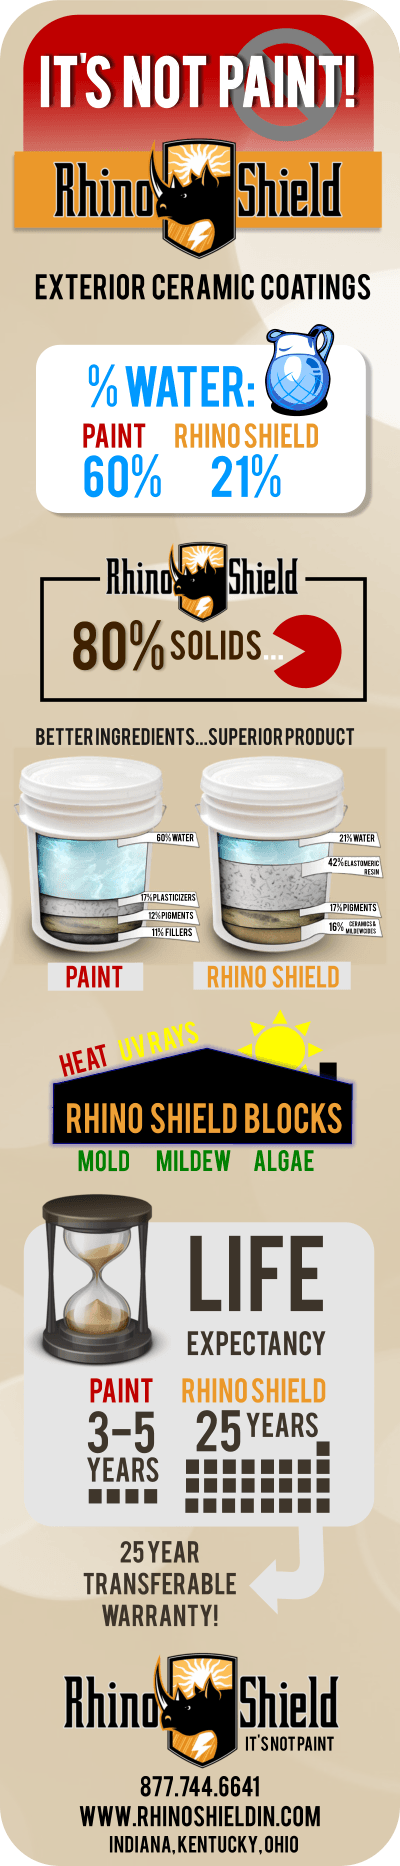 Rhino Shield vs Paint Infographic - It's Not Paint